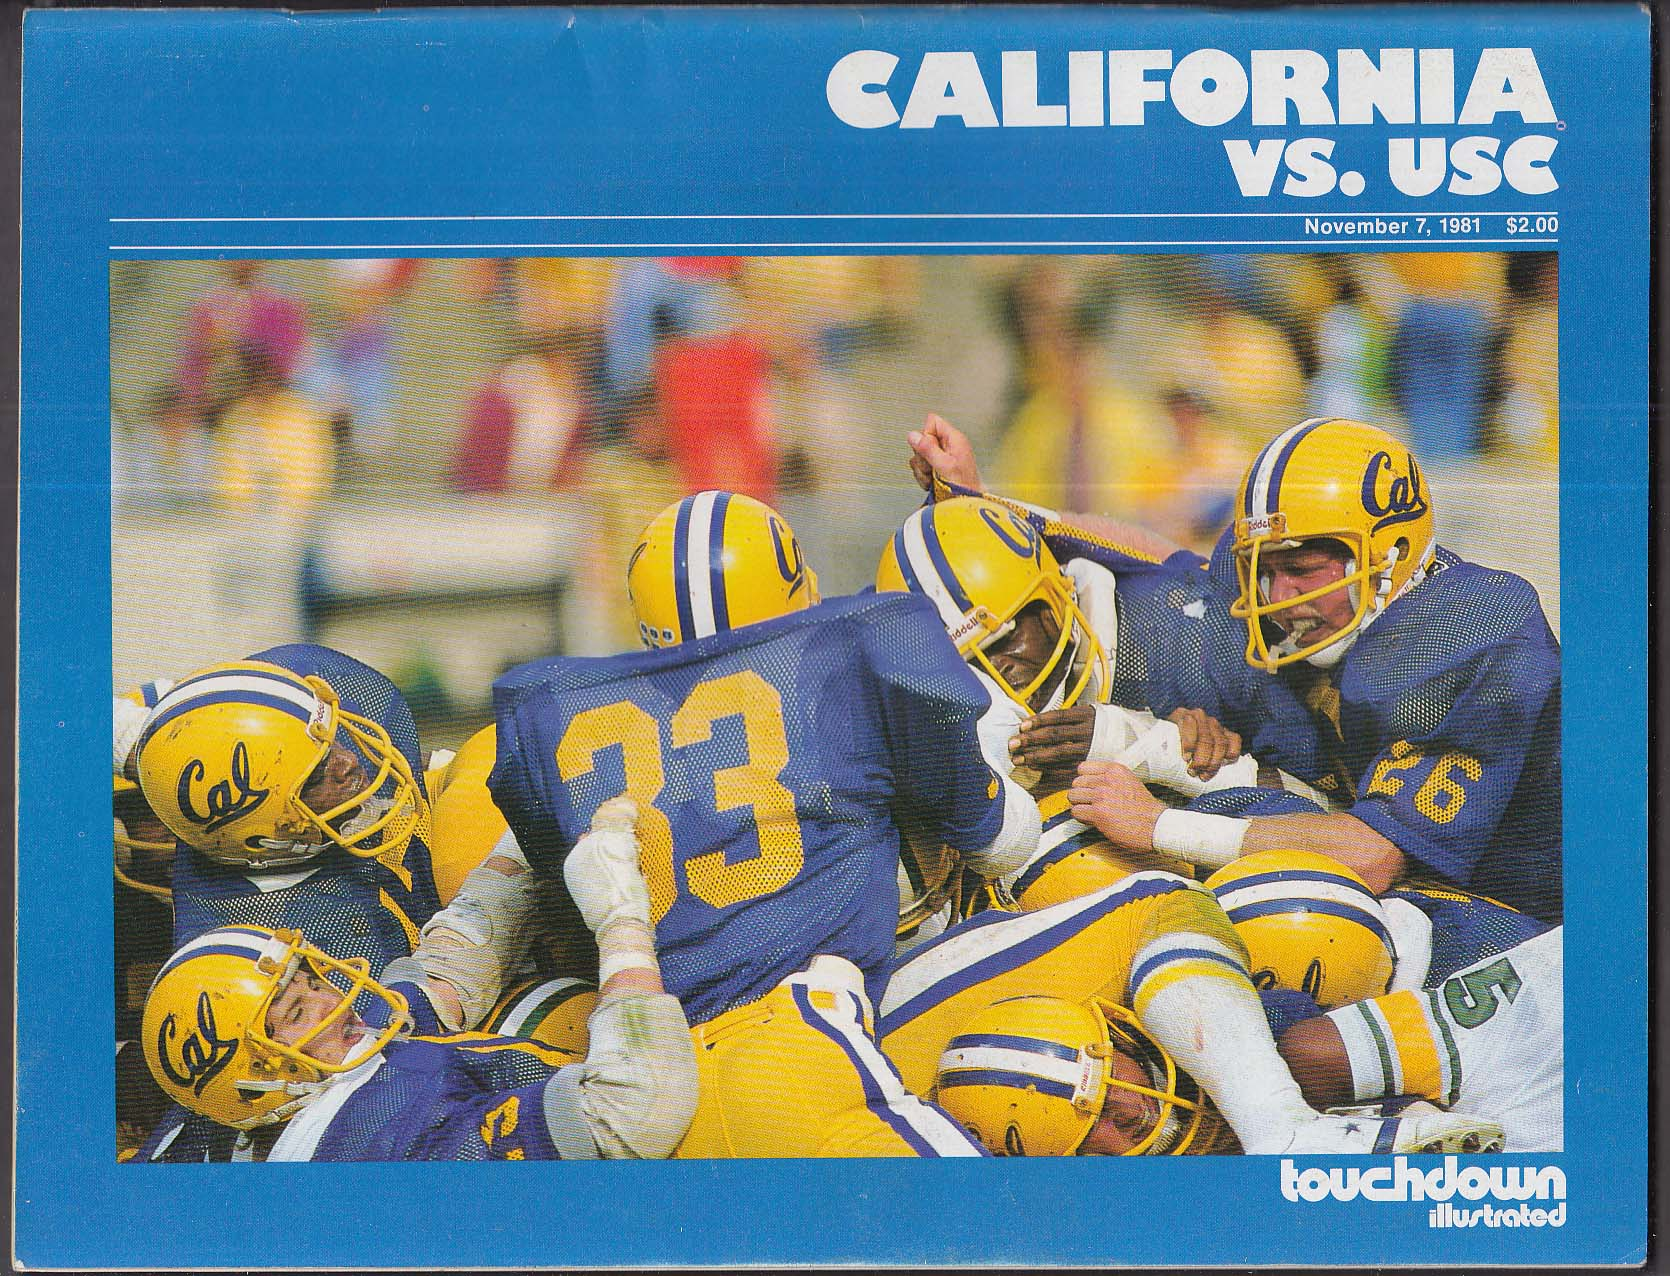 TOUCHDOWN ILLUSTRATED California vs USC 11/7 1981